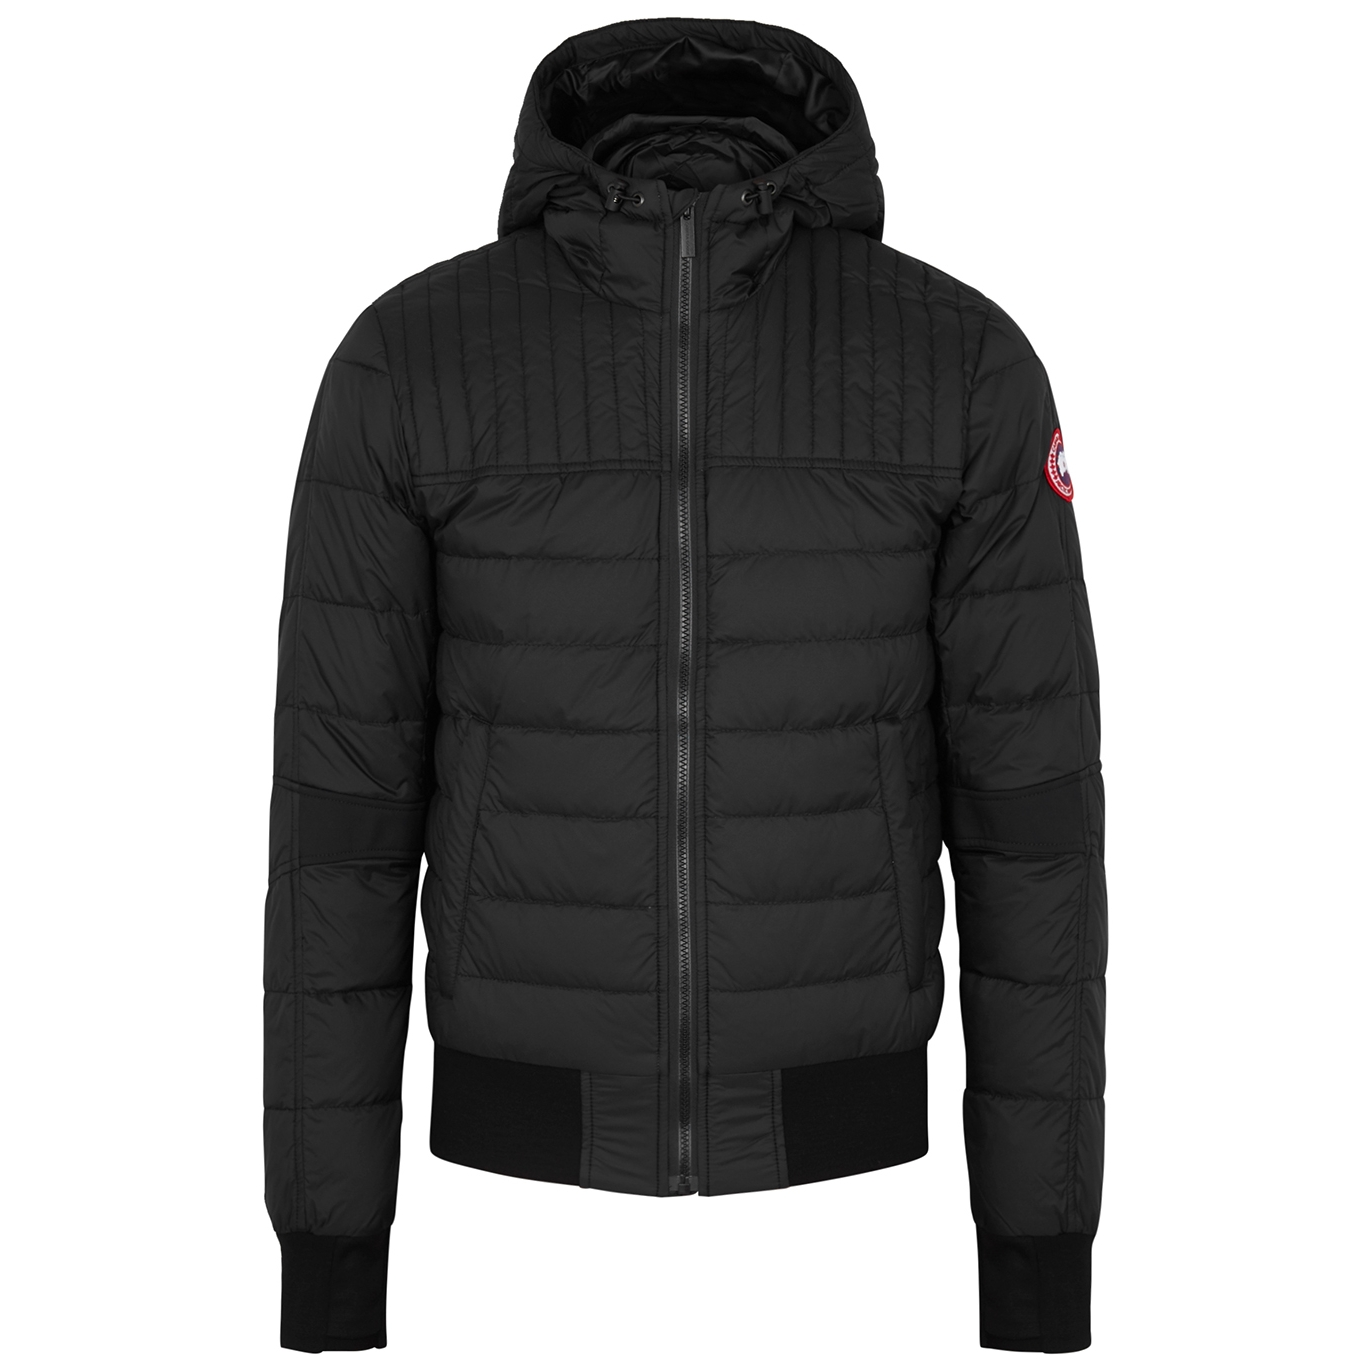 cbbd58e076d Cabri black quilted shell jacket